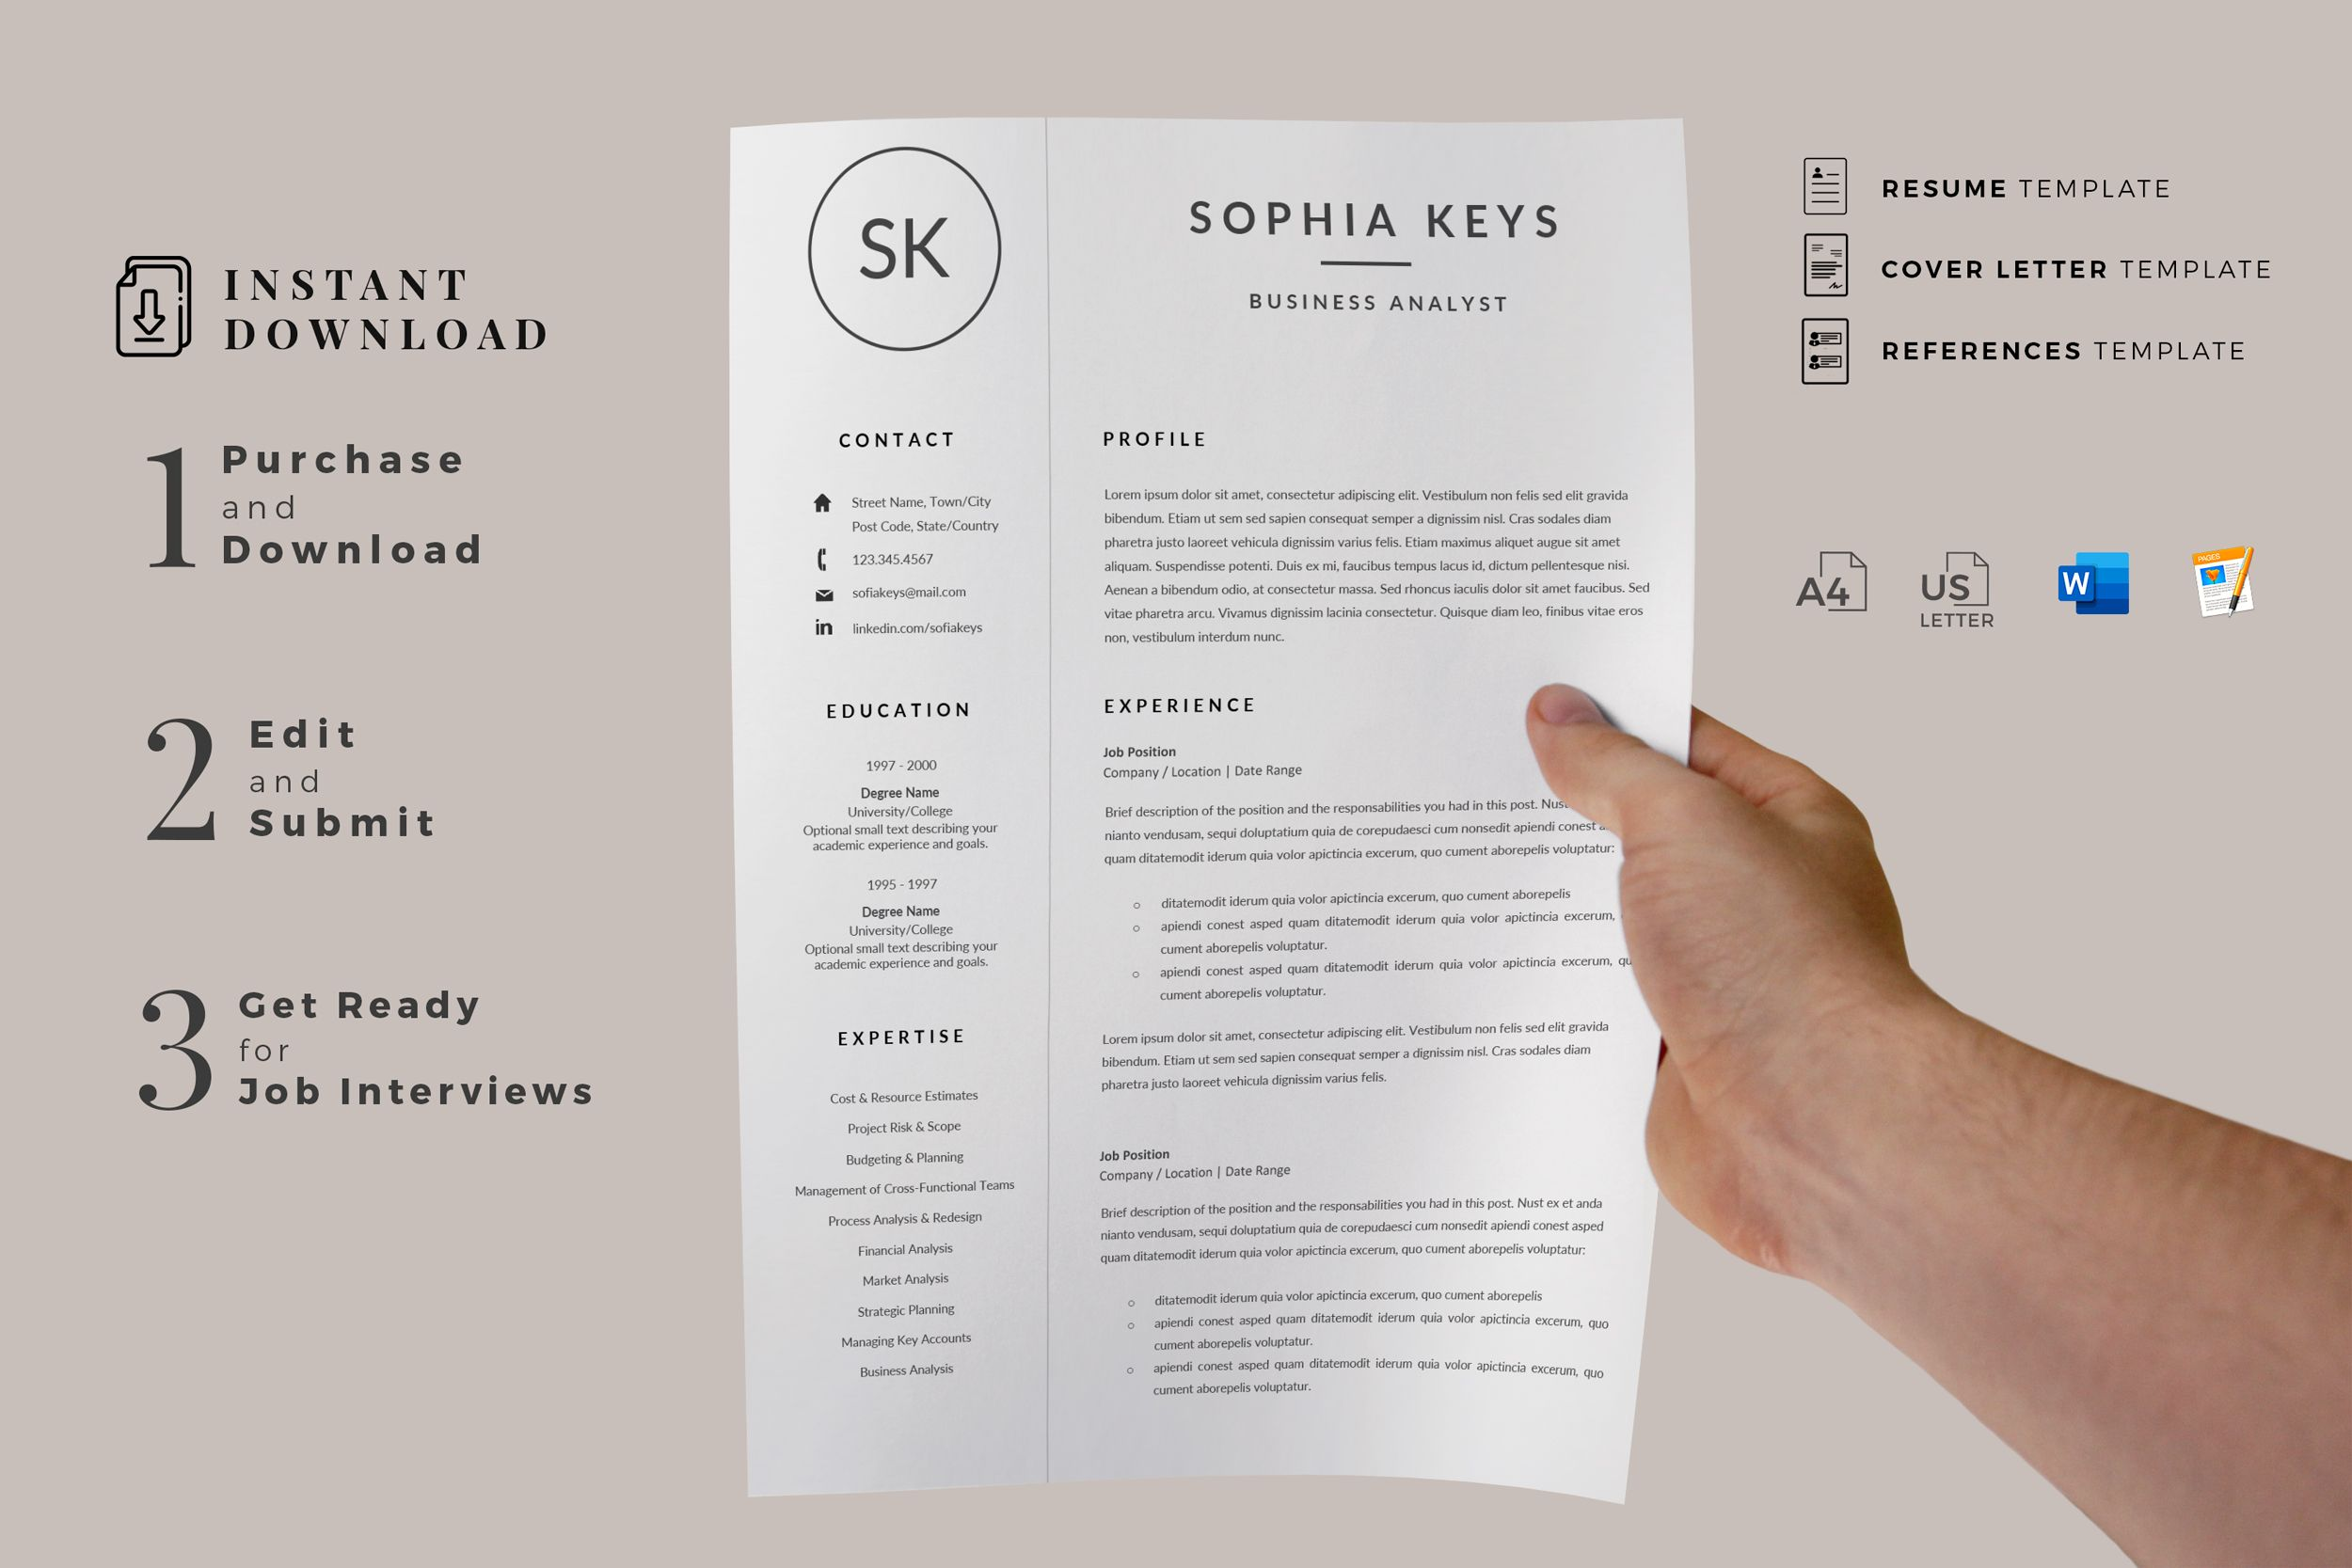 Creative Resume Templates For Ms Word And Mac Pages Professional Resume Templates And Matching Cover Le Lettering Resume Template Professional Resume Template